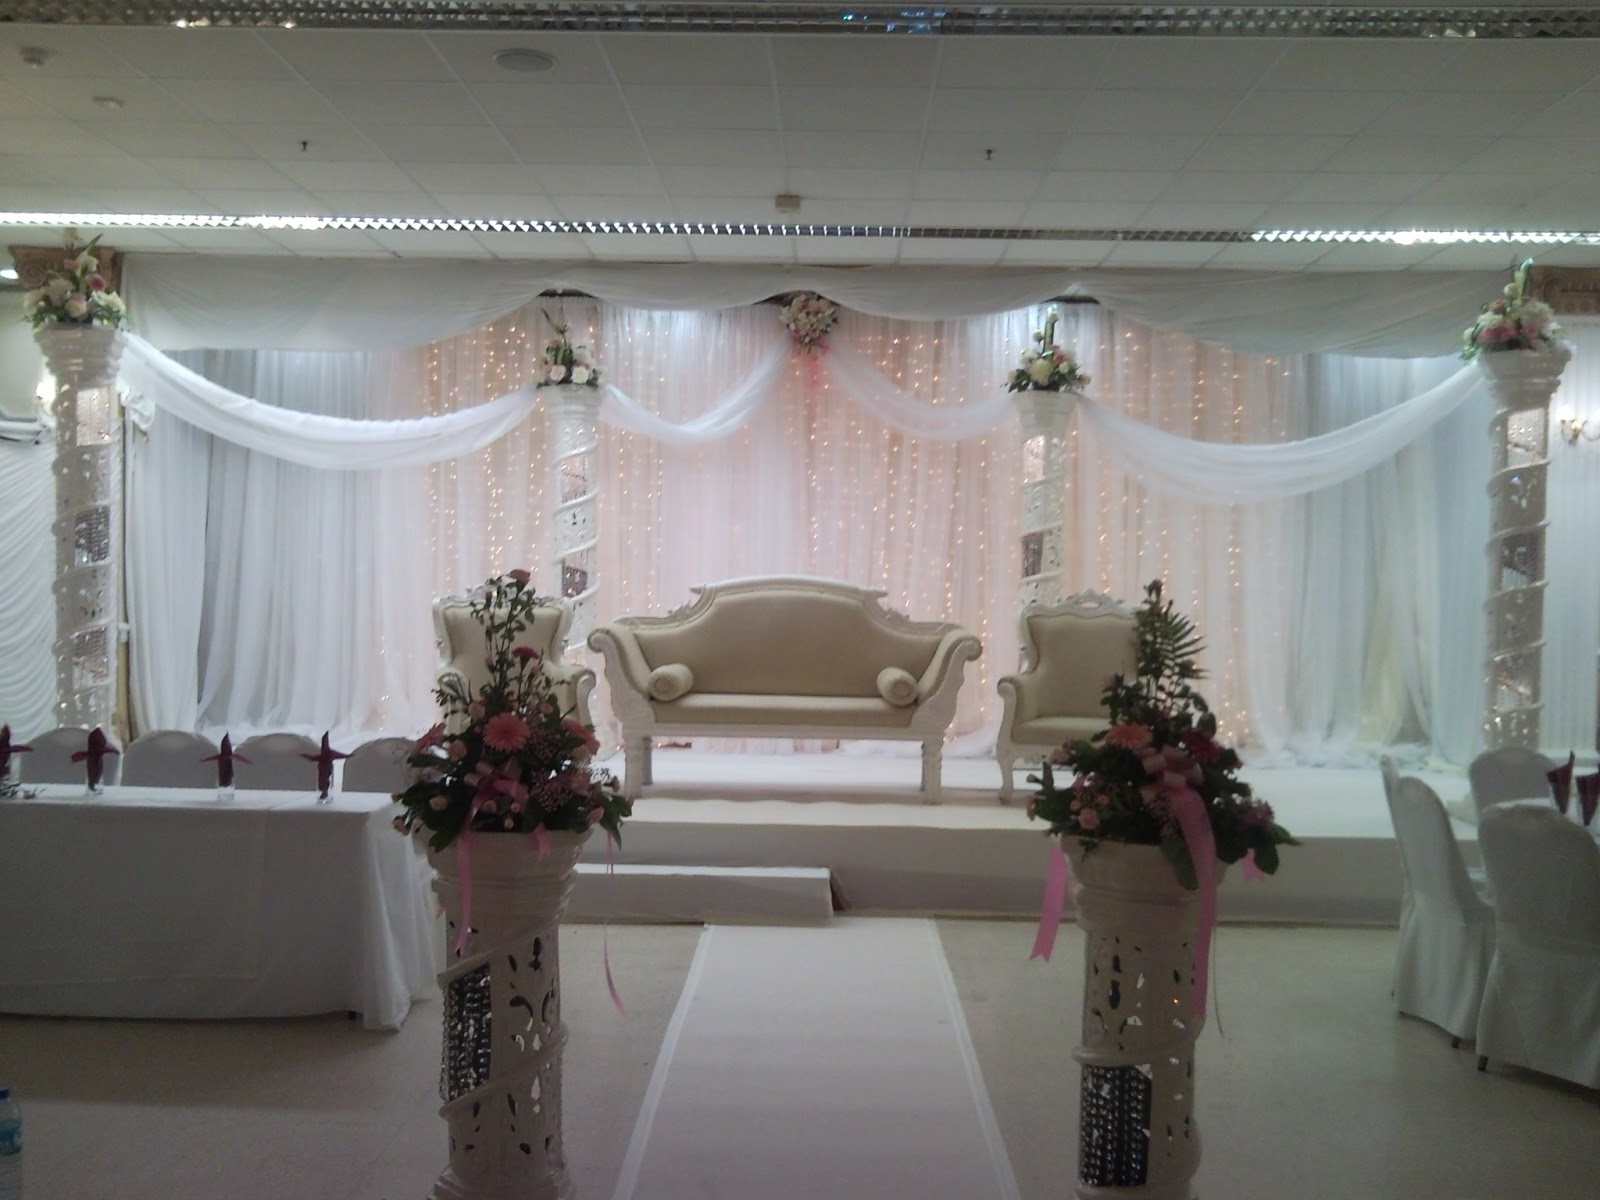 About Marriage: Marriage Decoration Photos 2013